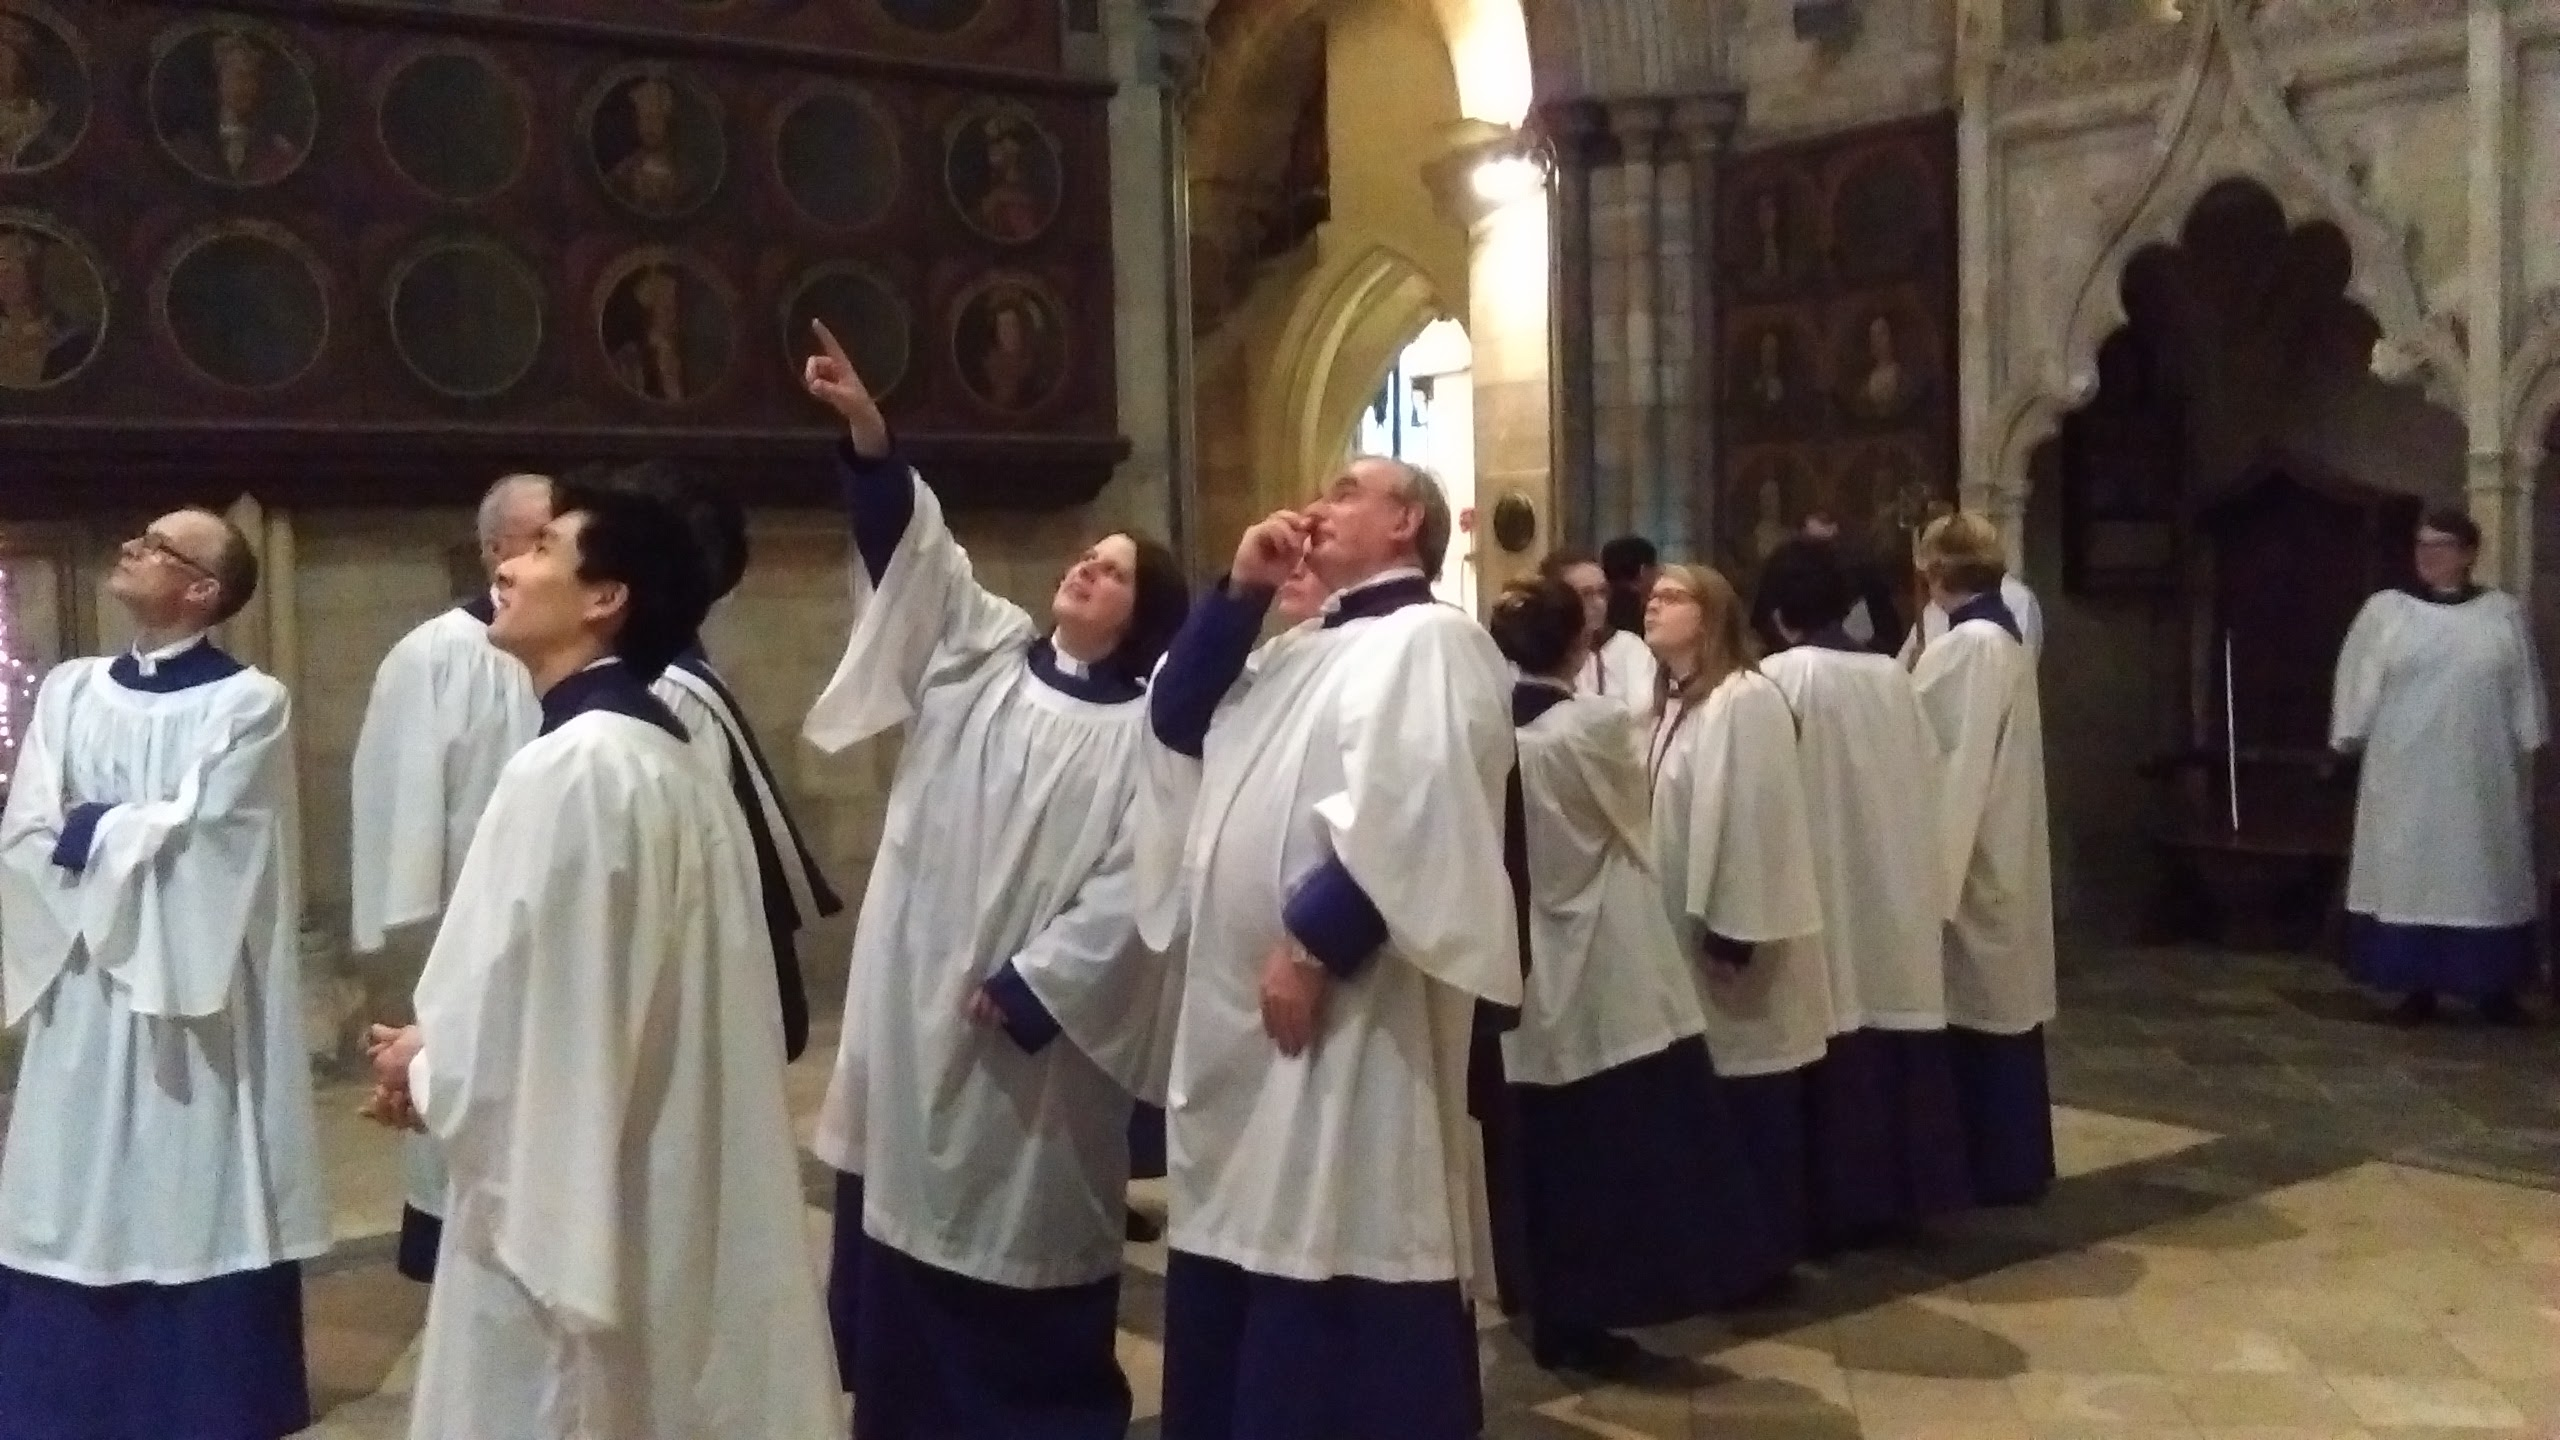 St Michael's Choir in Chichester Cathedral